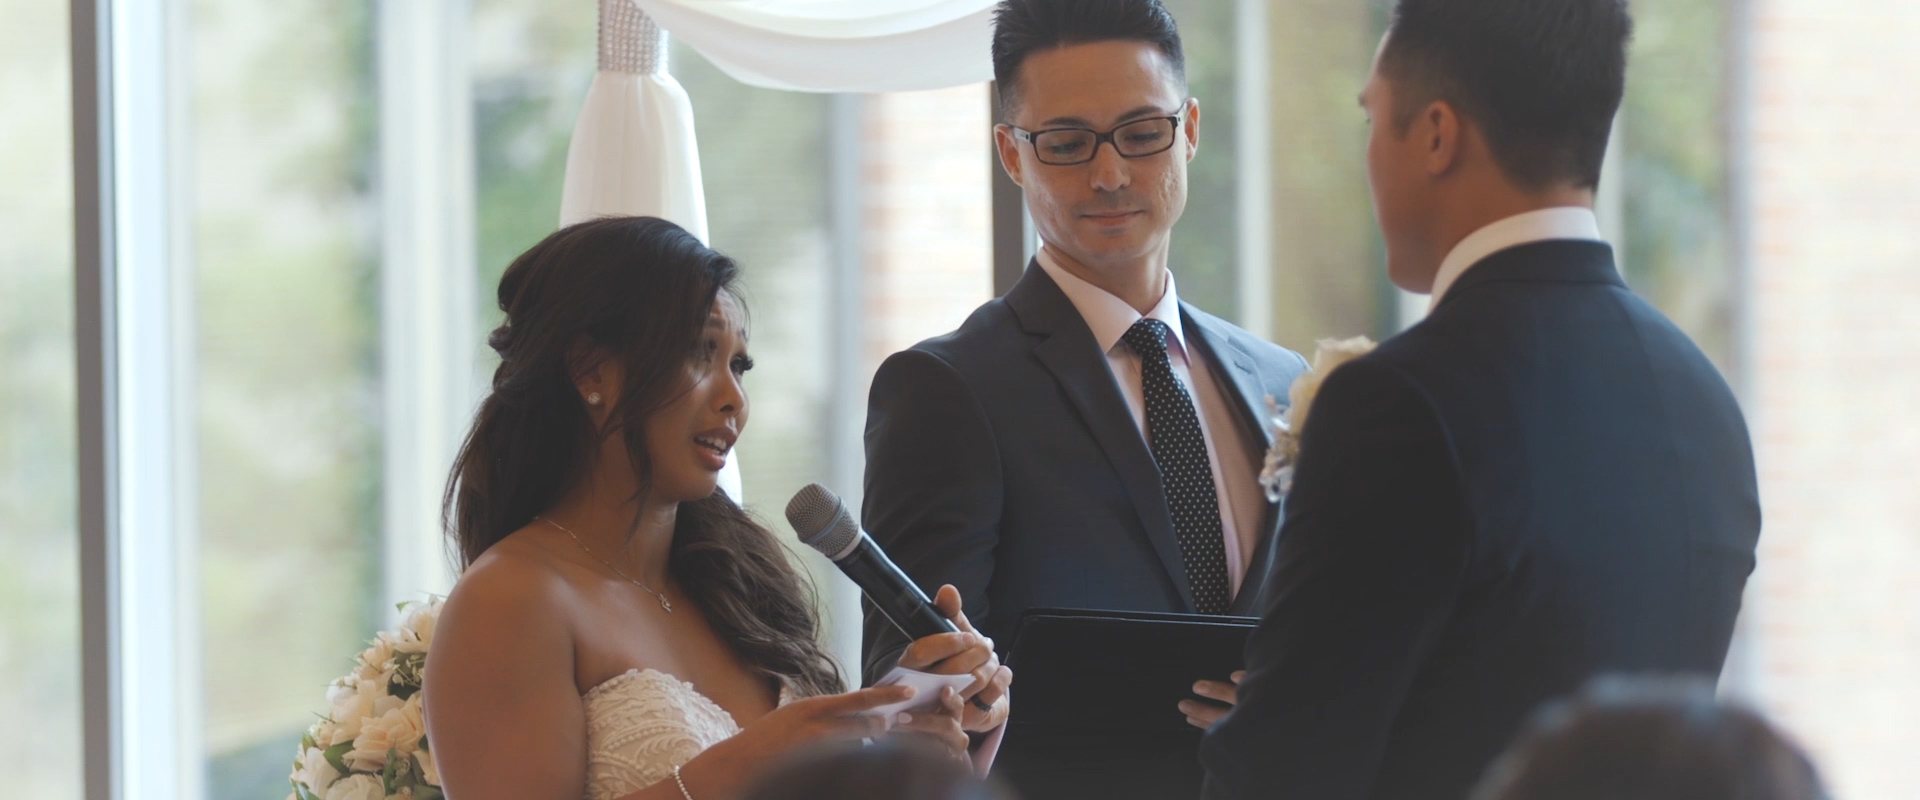 An image of a bride reciting her vows at her wedding ceremony; taken from a Toronto Wedding Video